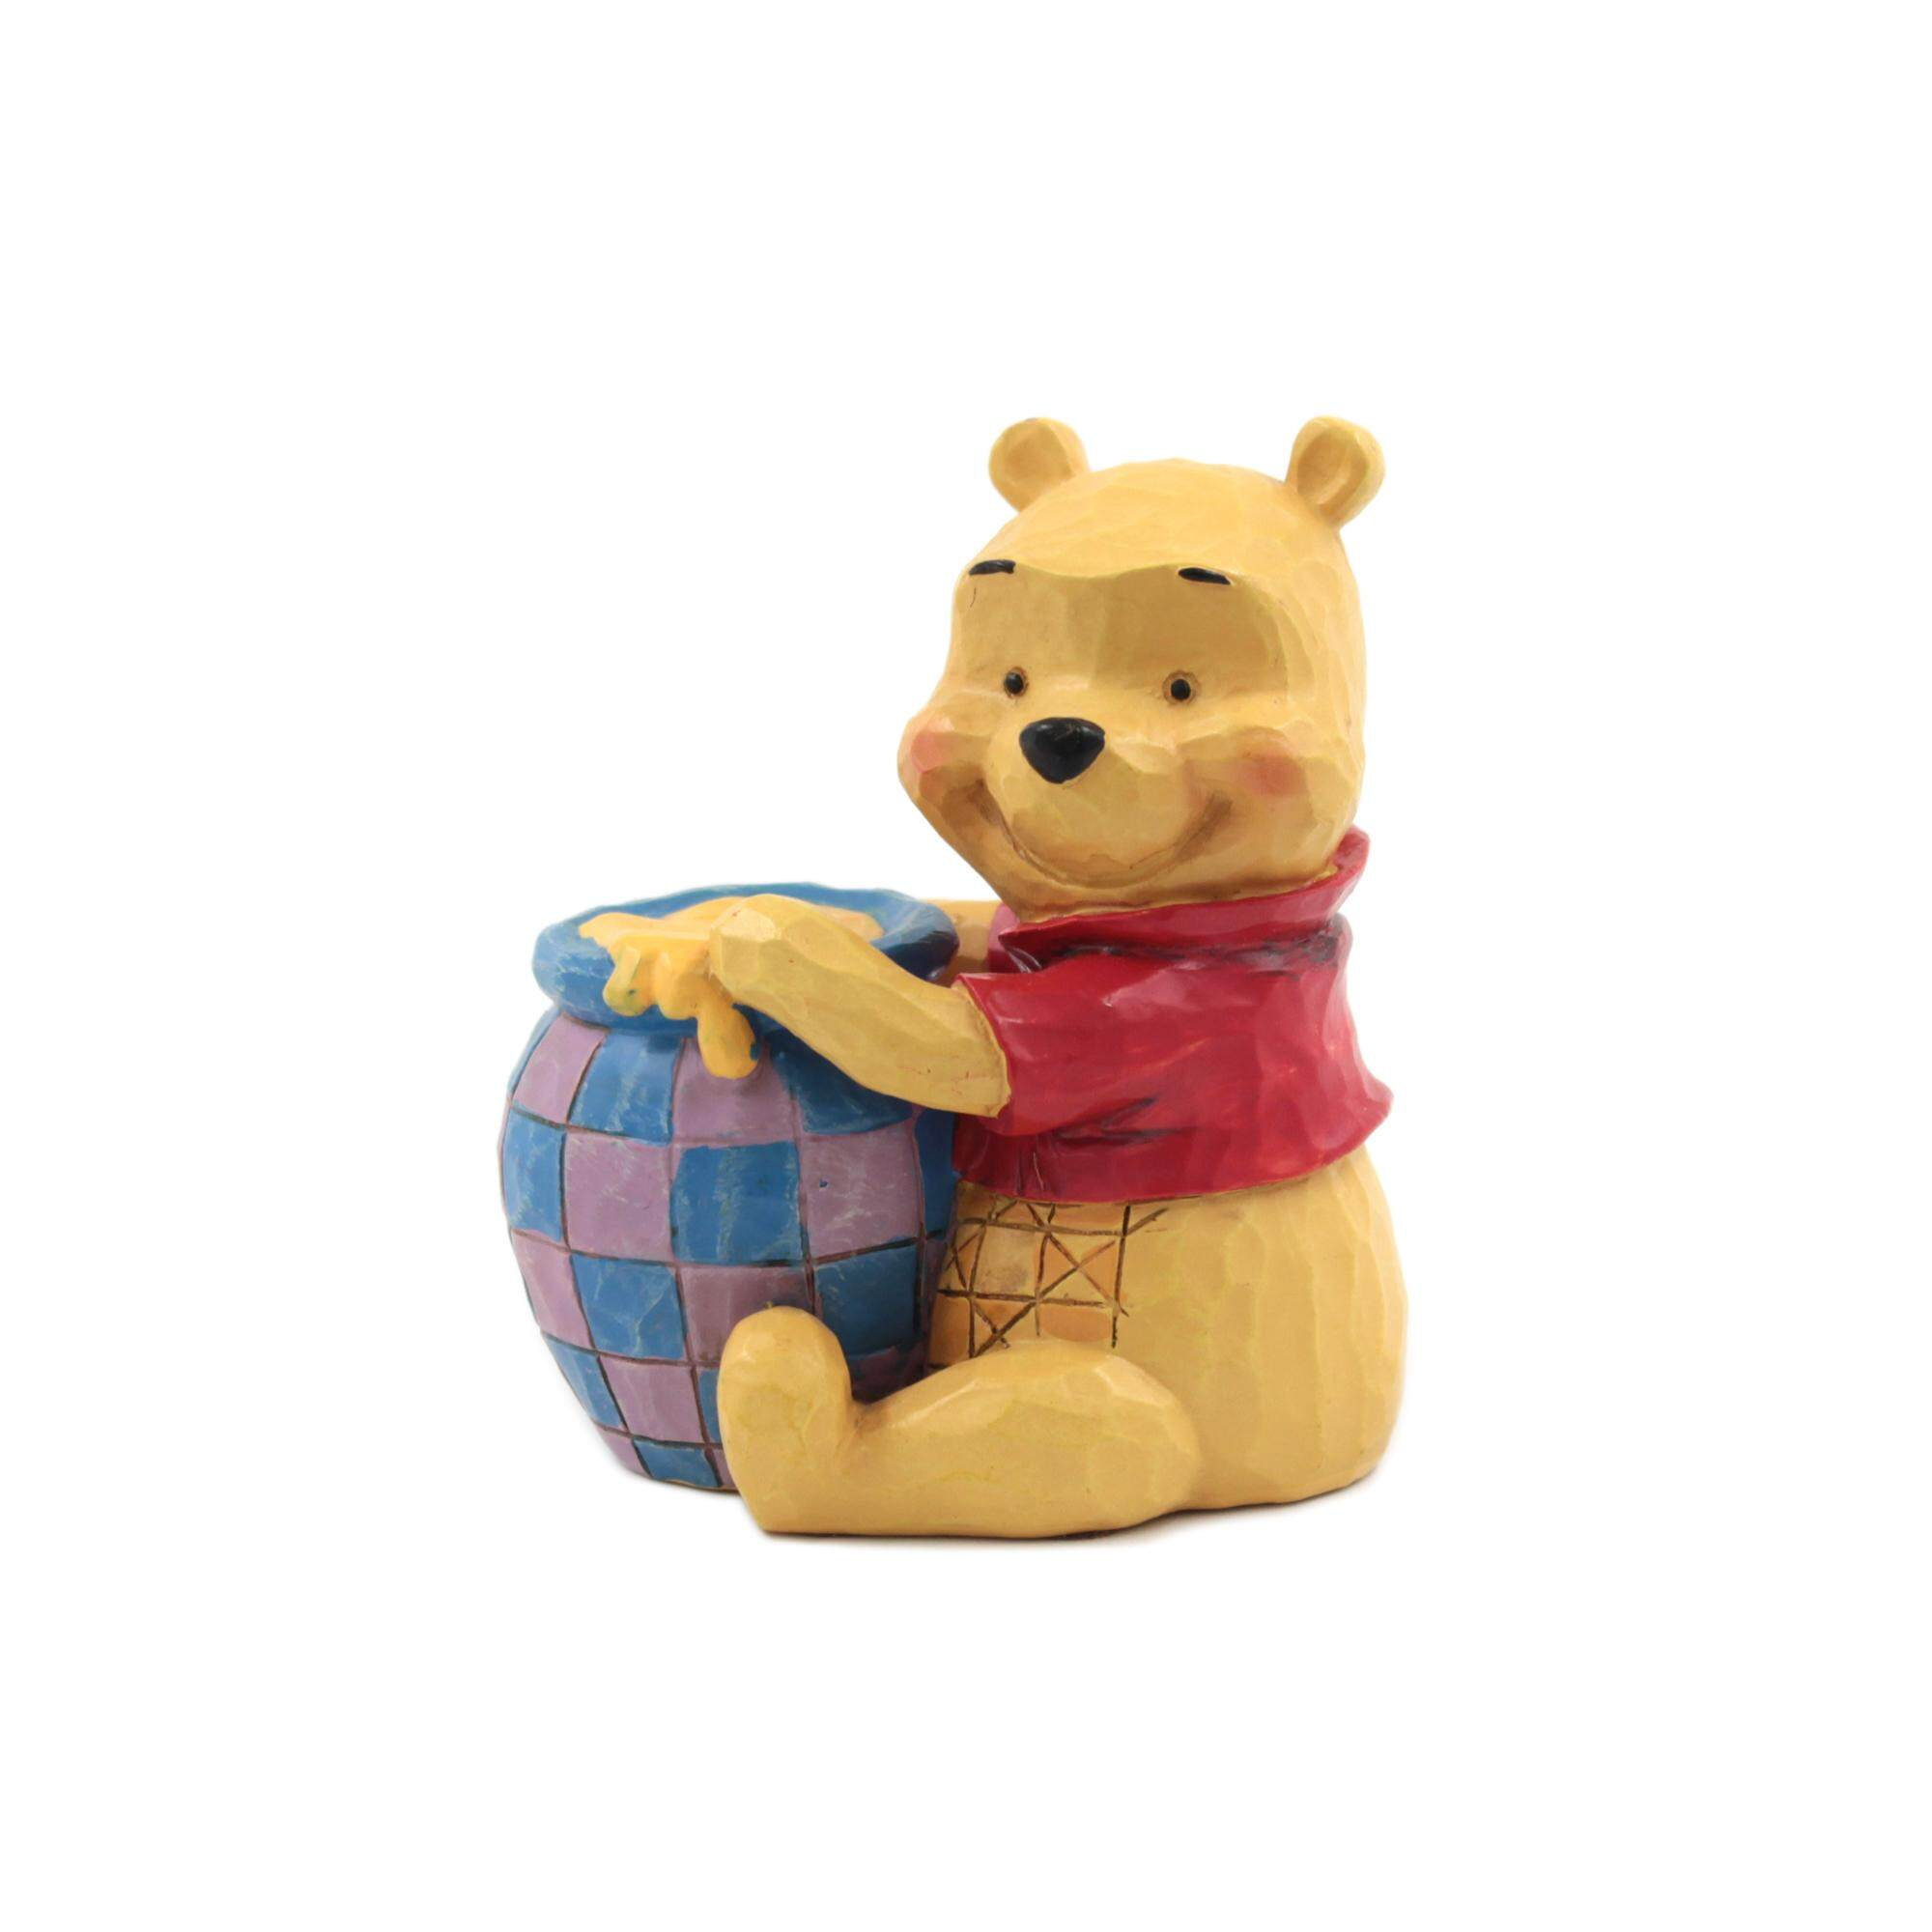 Enesco Disney Traditions Winnie the Pooh Hand Painted Collection - Mini Pooh with Honey